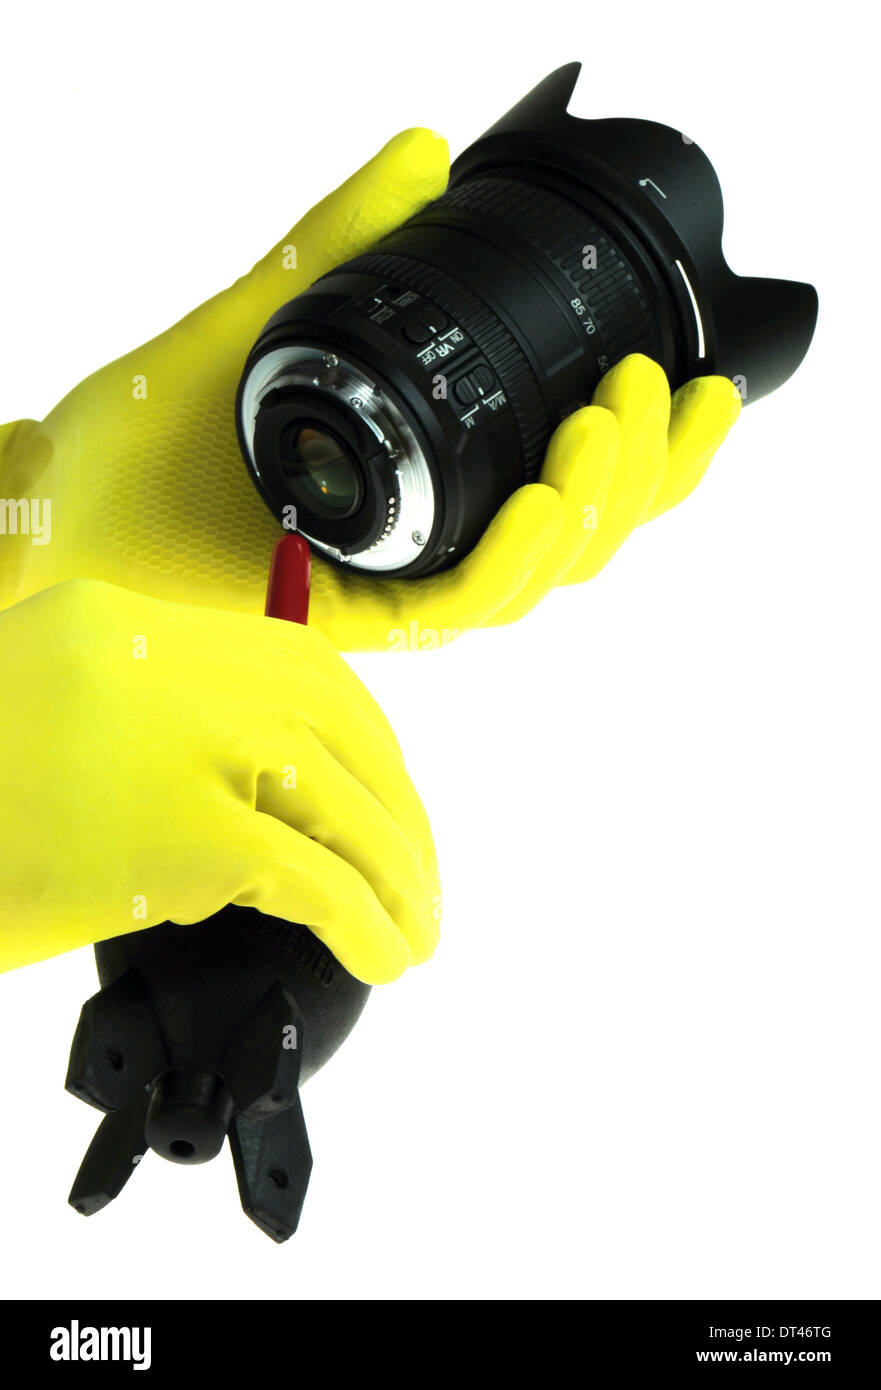 Optics cleaning tools - Stock Image